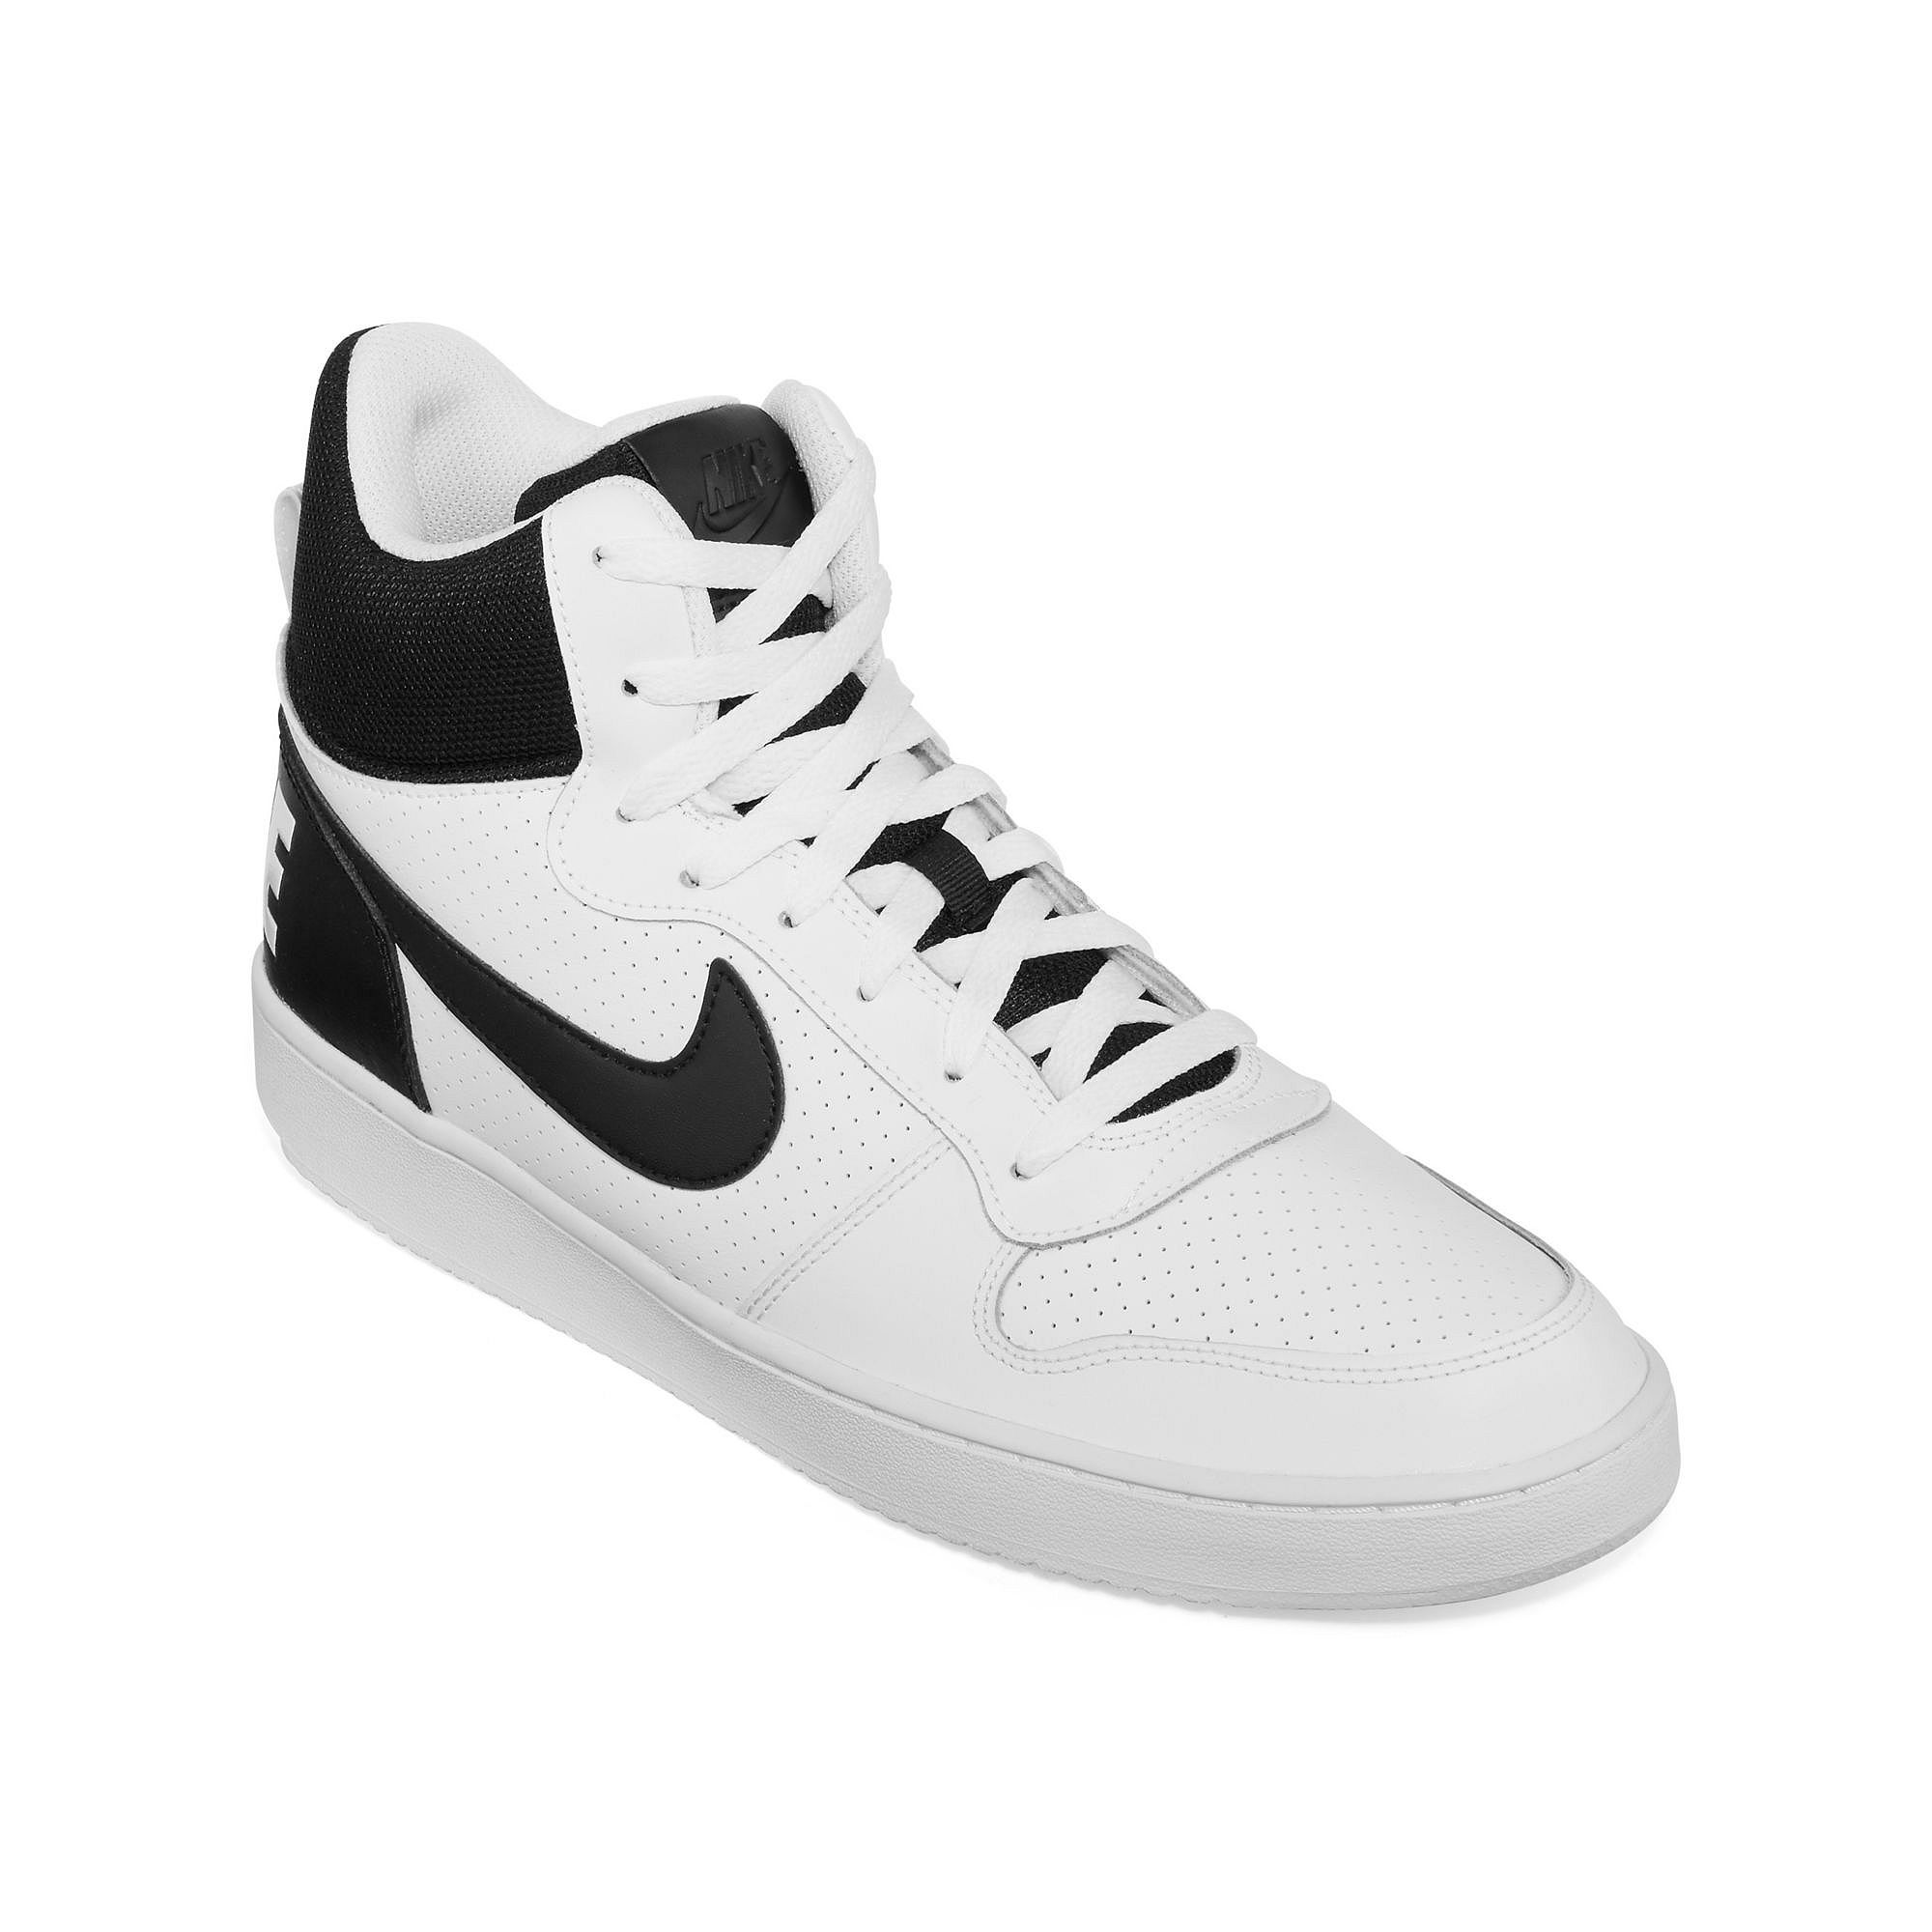 e6dddf3d930f9 ... UPC 883418909031 product image for Nike Court Borough Mid Mens  Basketball Shoes